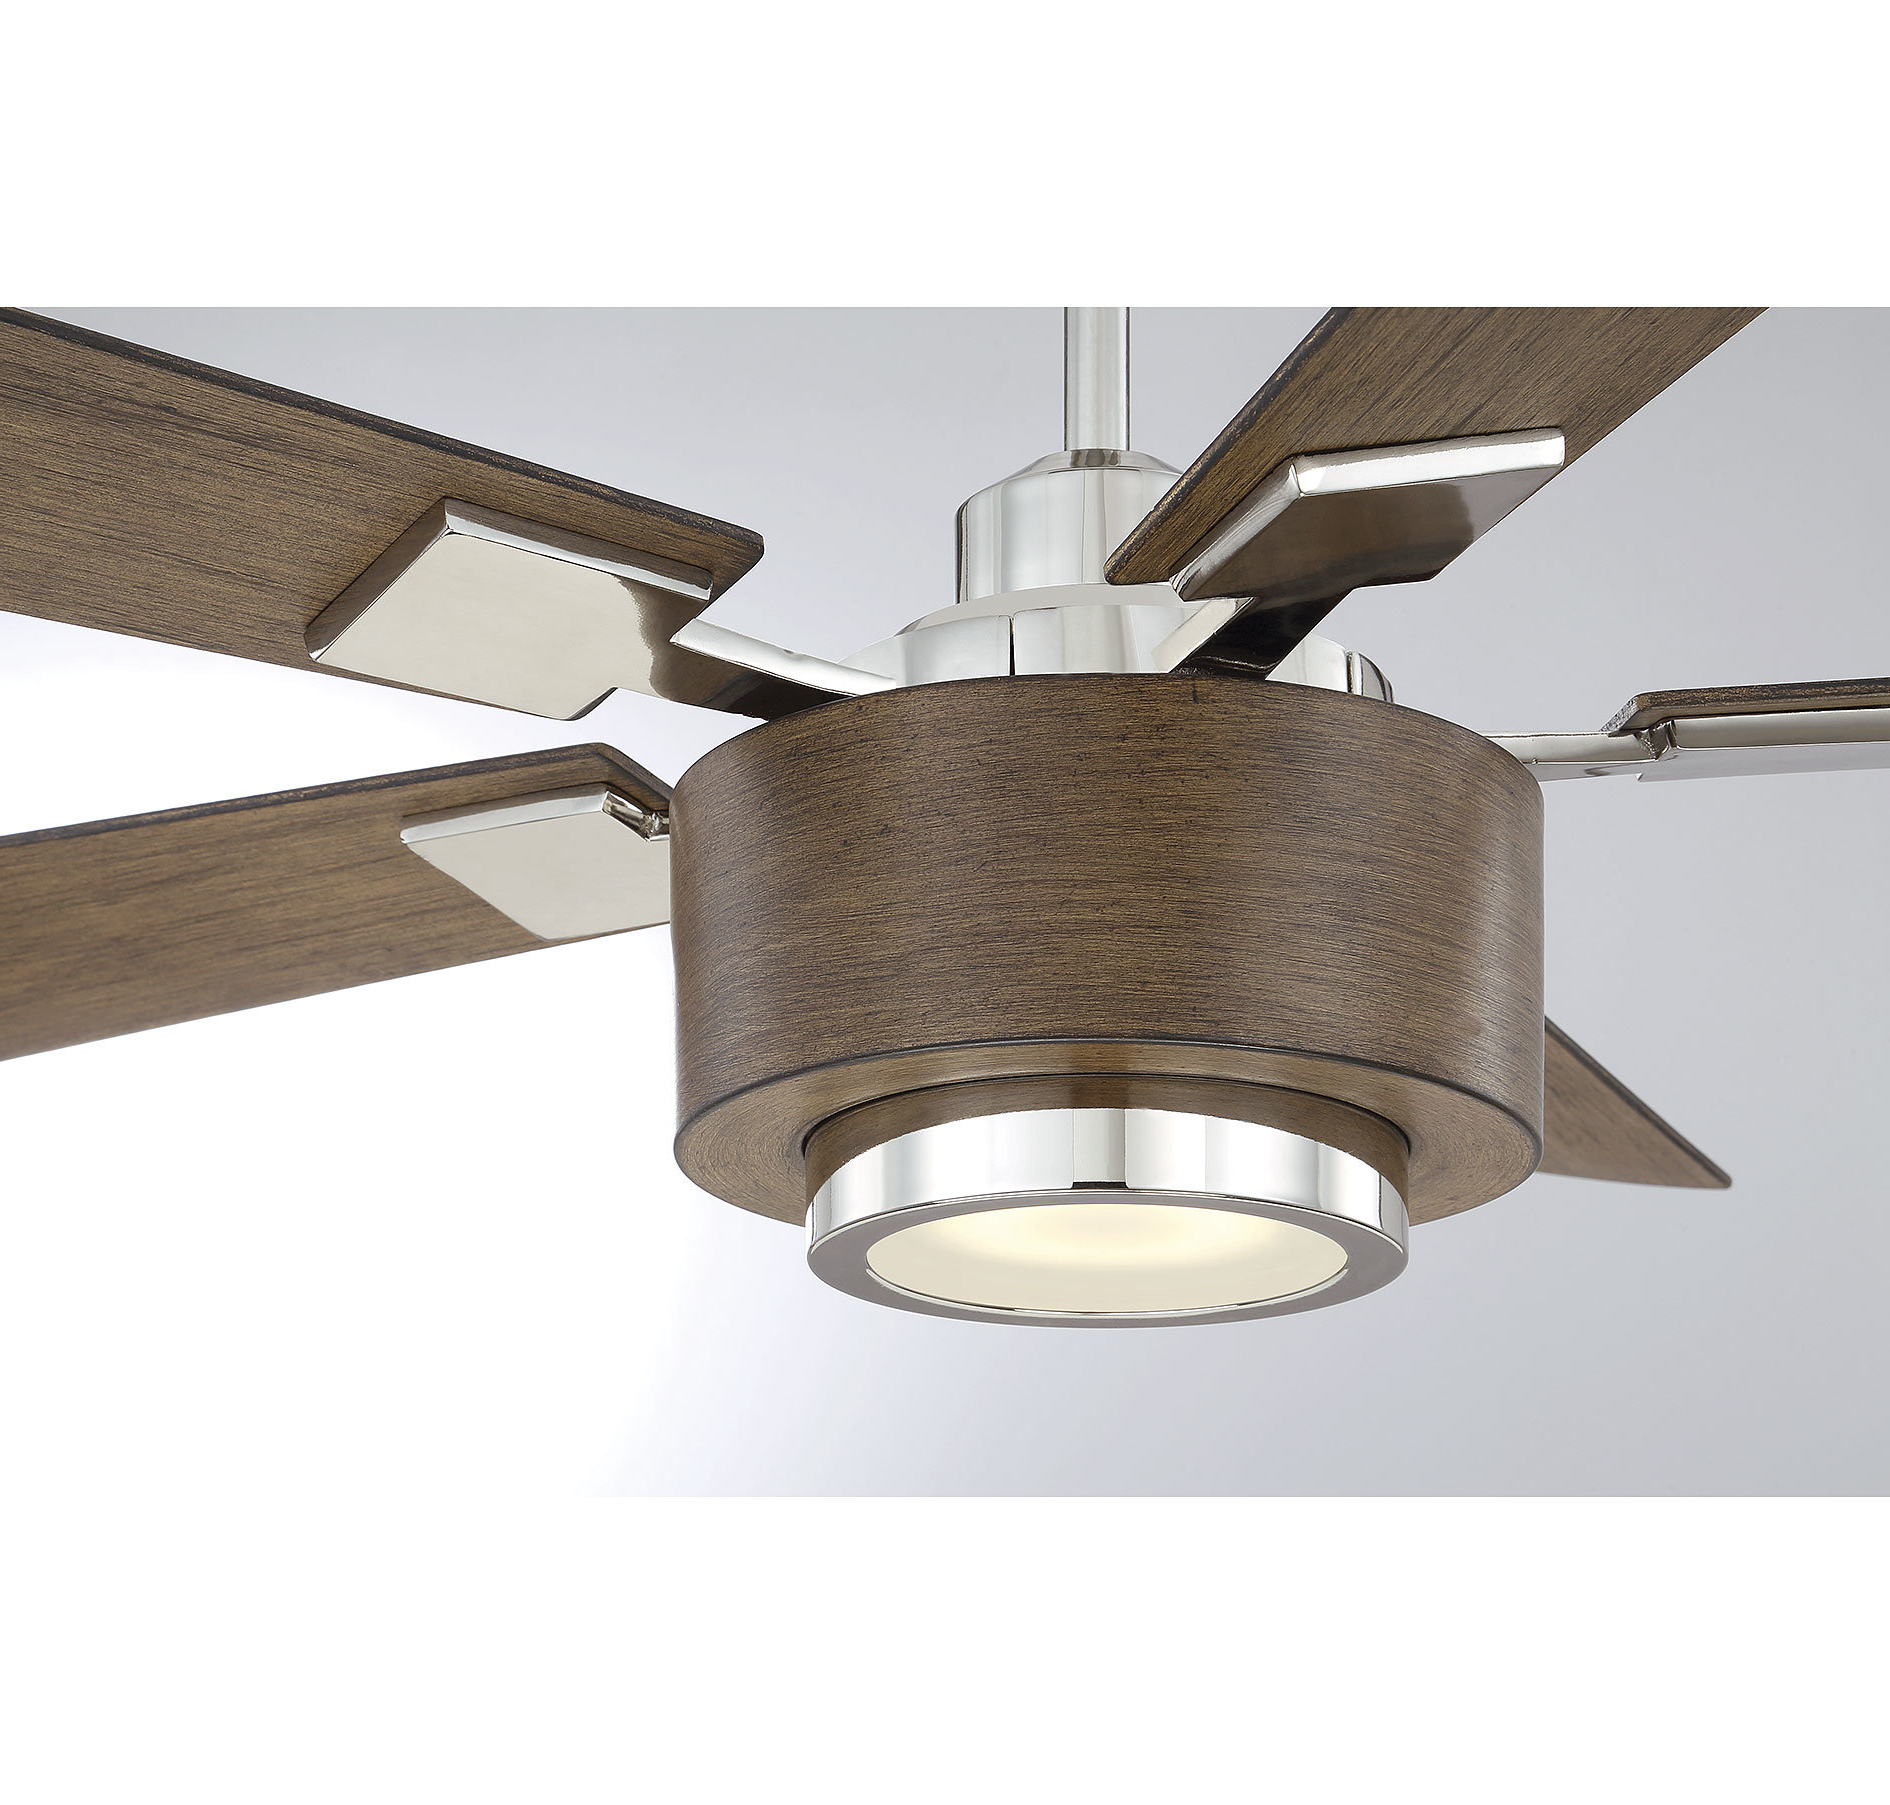 "St George 52"" Winchester 5 Blade Led Ceiling Fan With Remote In Recent Bennett 5 Blade Ceiling Fans With Remote (View 17 of 20)"